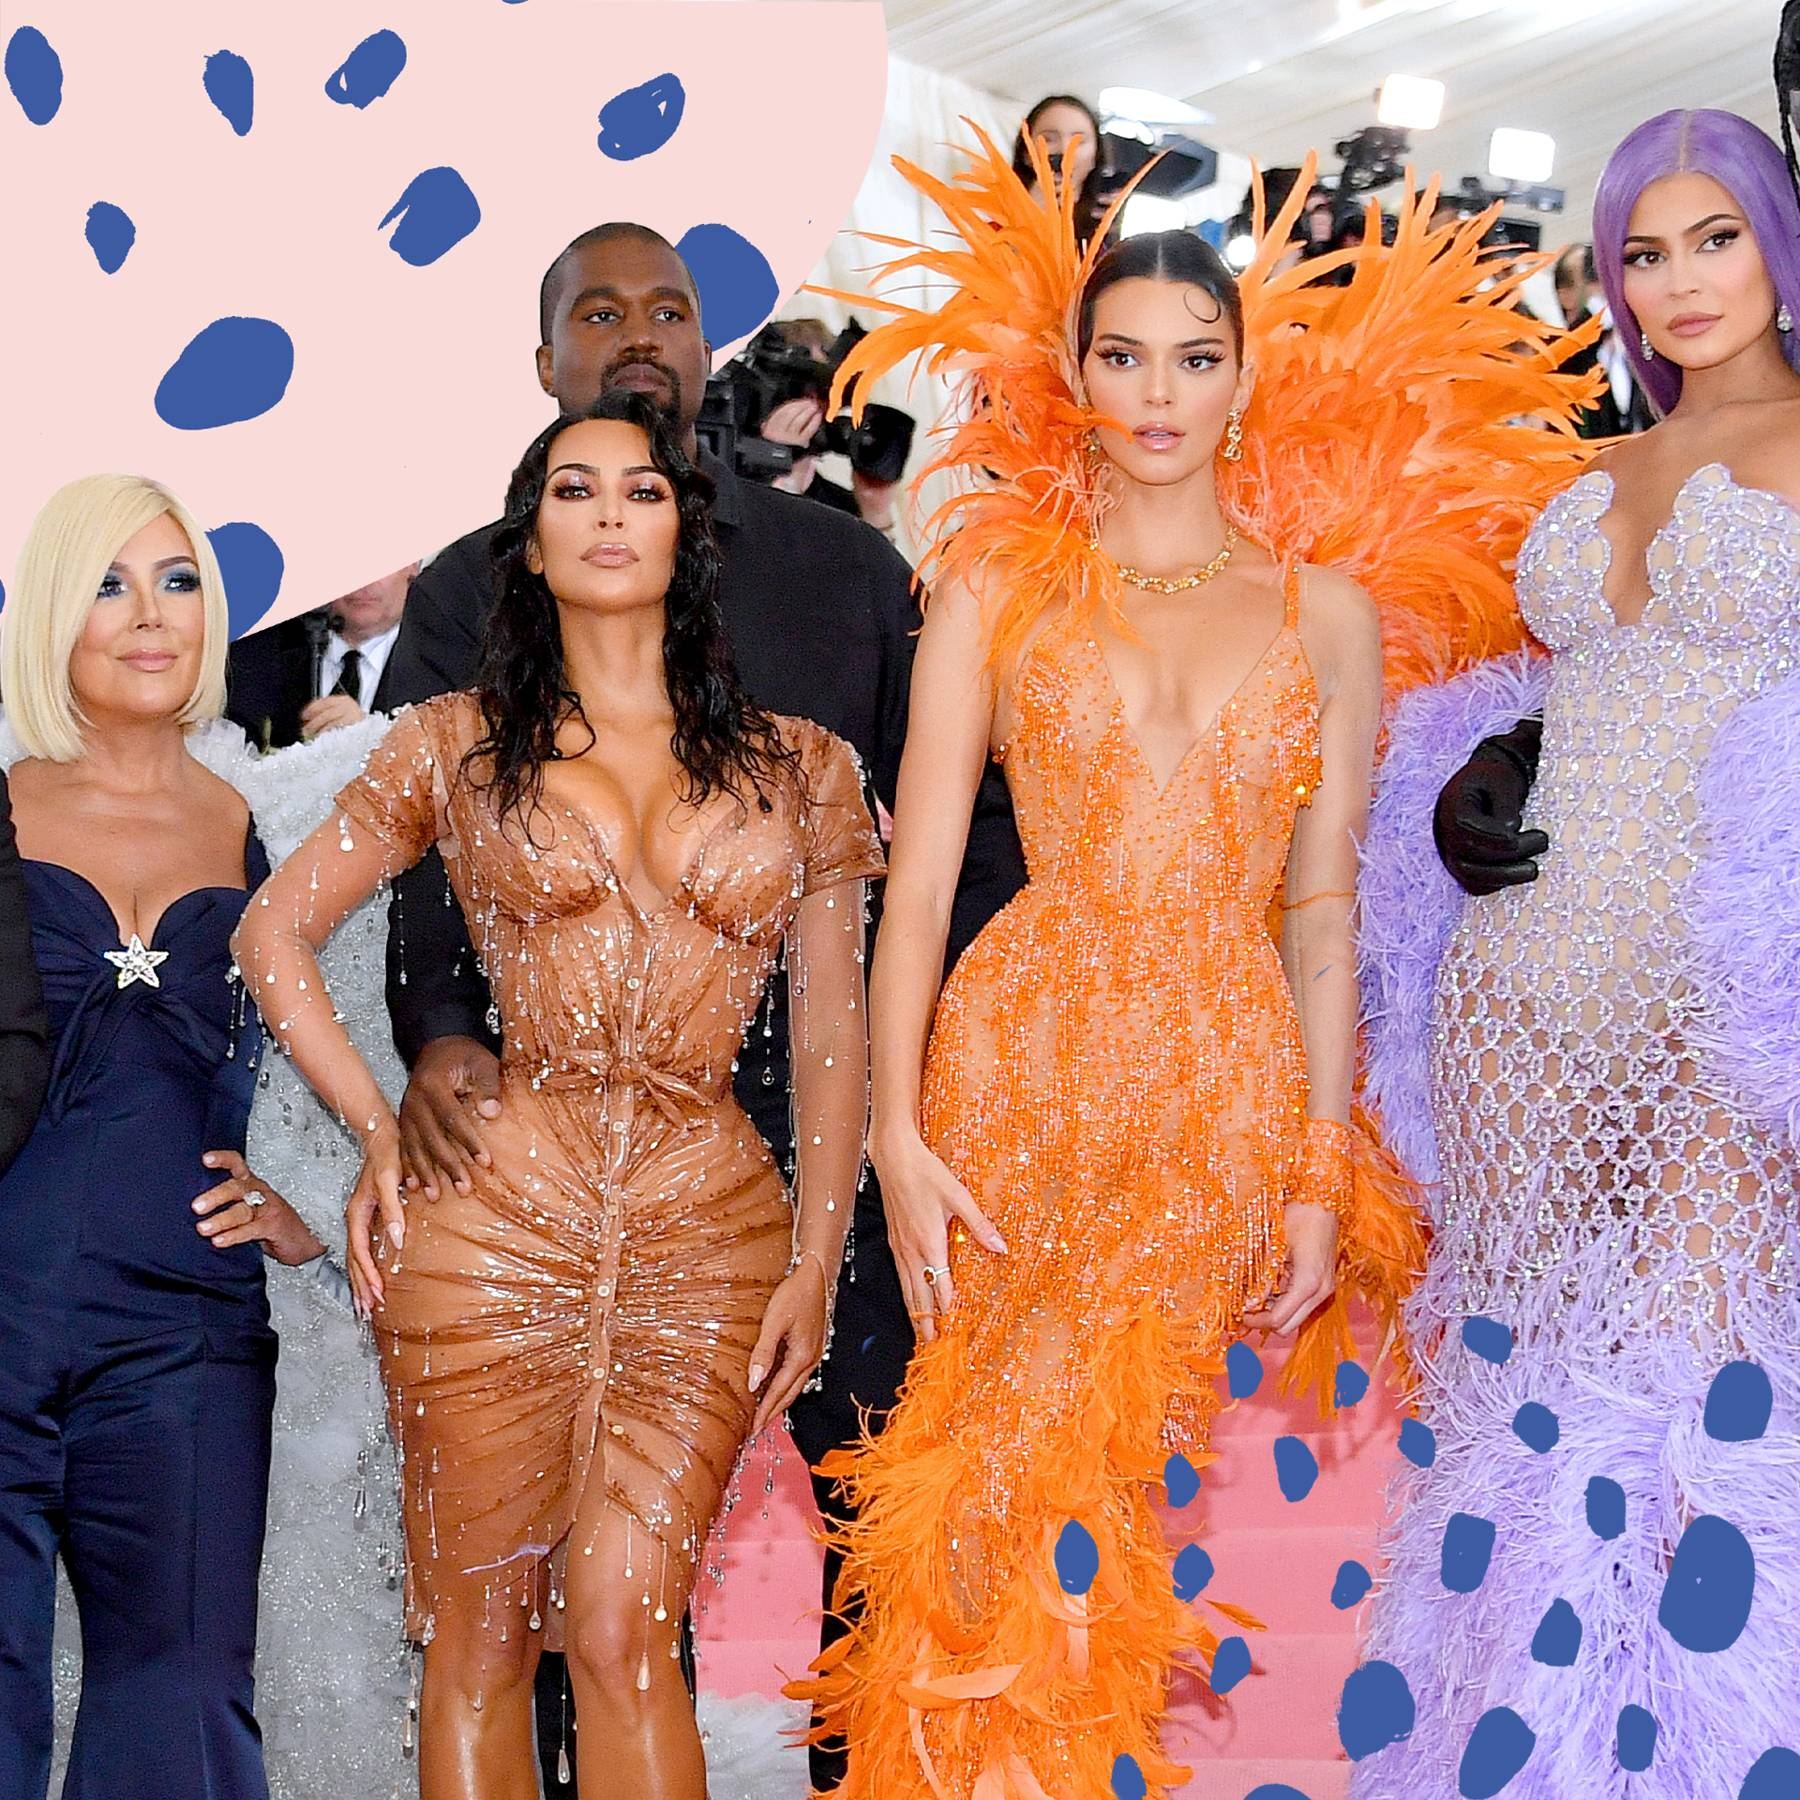 There's A New Kardashians TV Series Coming To Hulu/ Disney! | Glamour UK